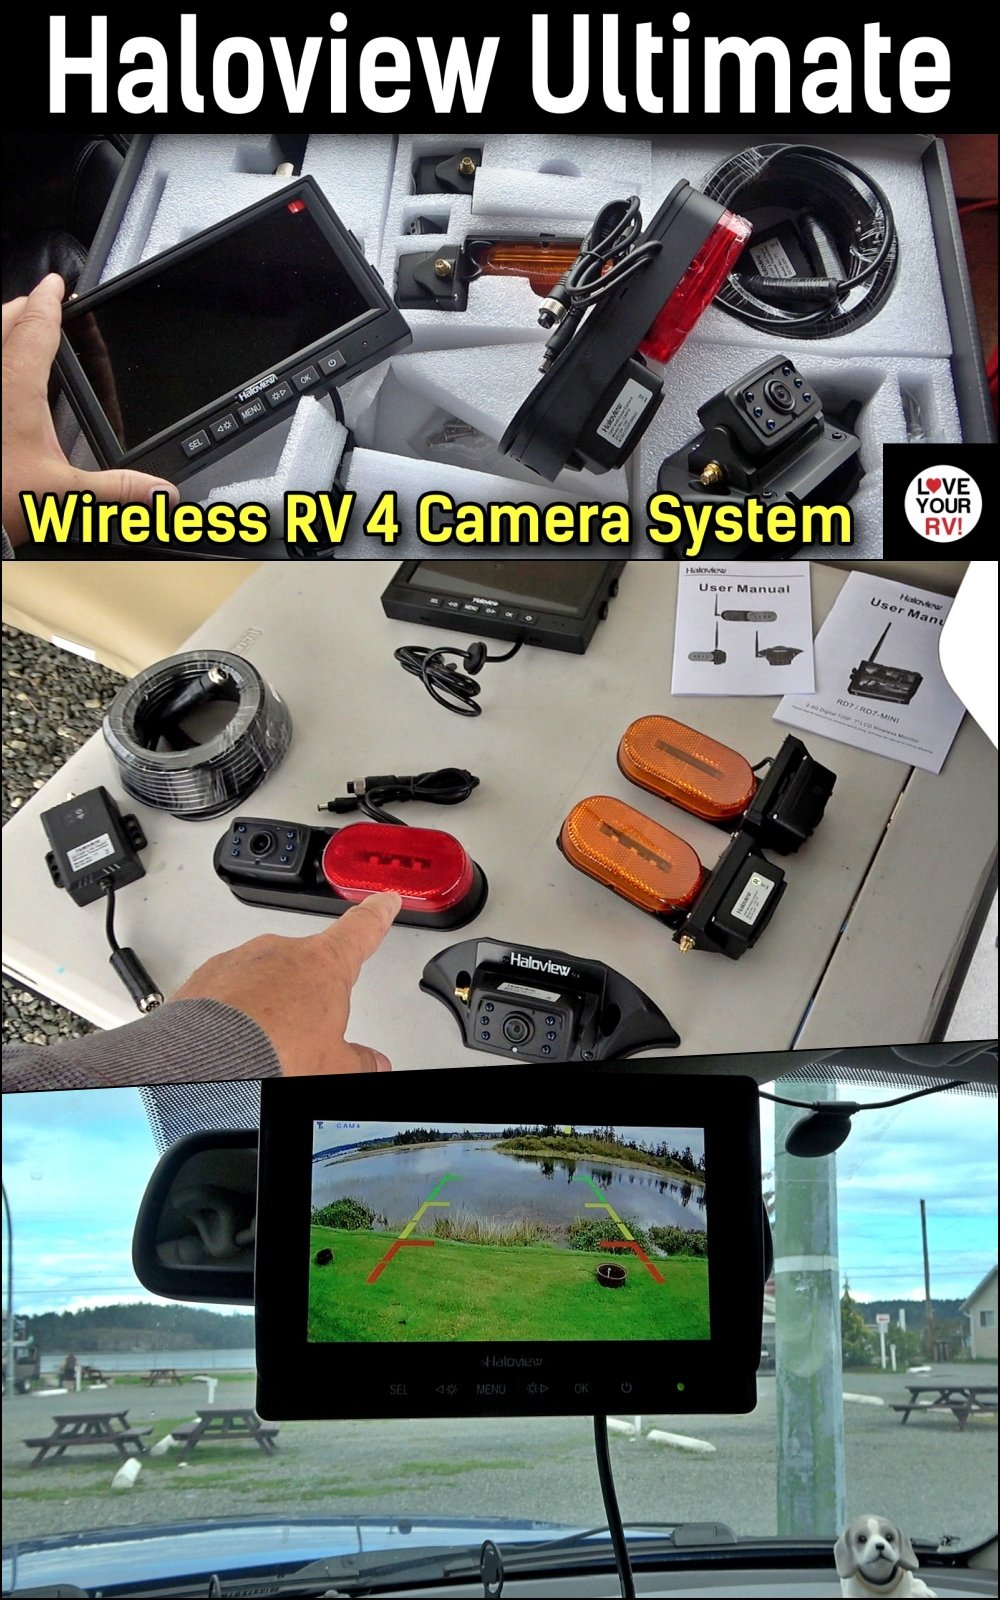 Installing the Haloview Ultimate Range Dominator Wireless RV Camera System with 4 cameras and range extender box